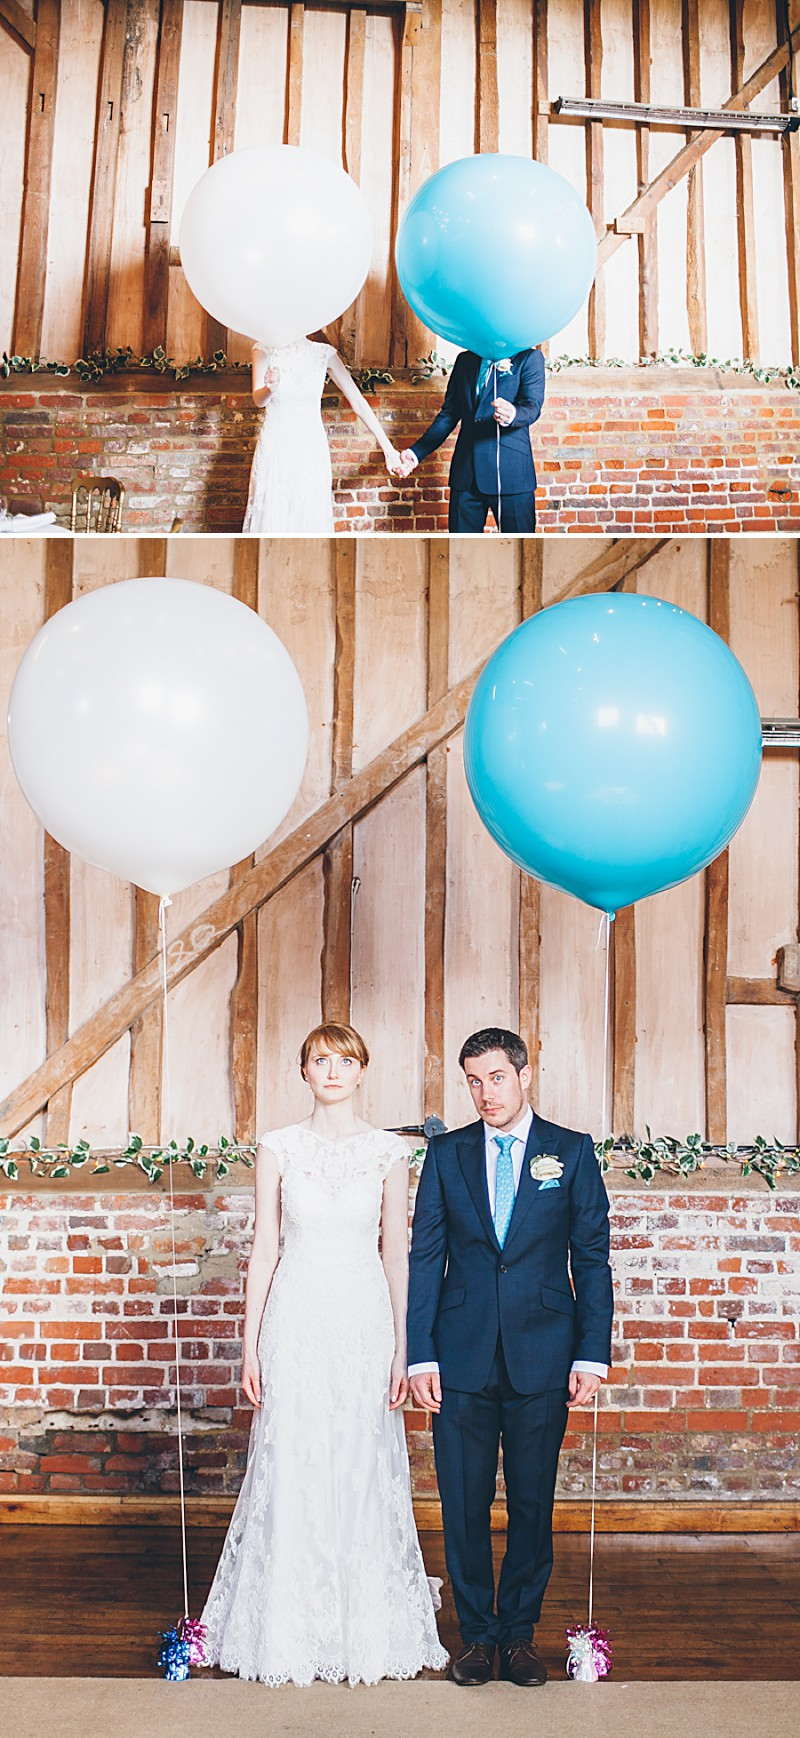 A modern contemporary barn wedding with bright colour scheme Essence of Australia dress and reiss suit.  Home made decorations and DIY elements. Photography by Lemonade Pictures_0009